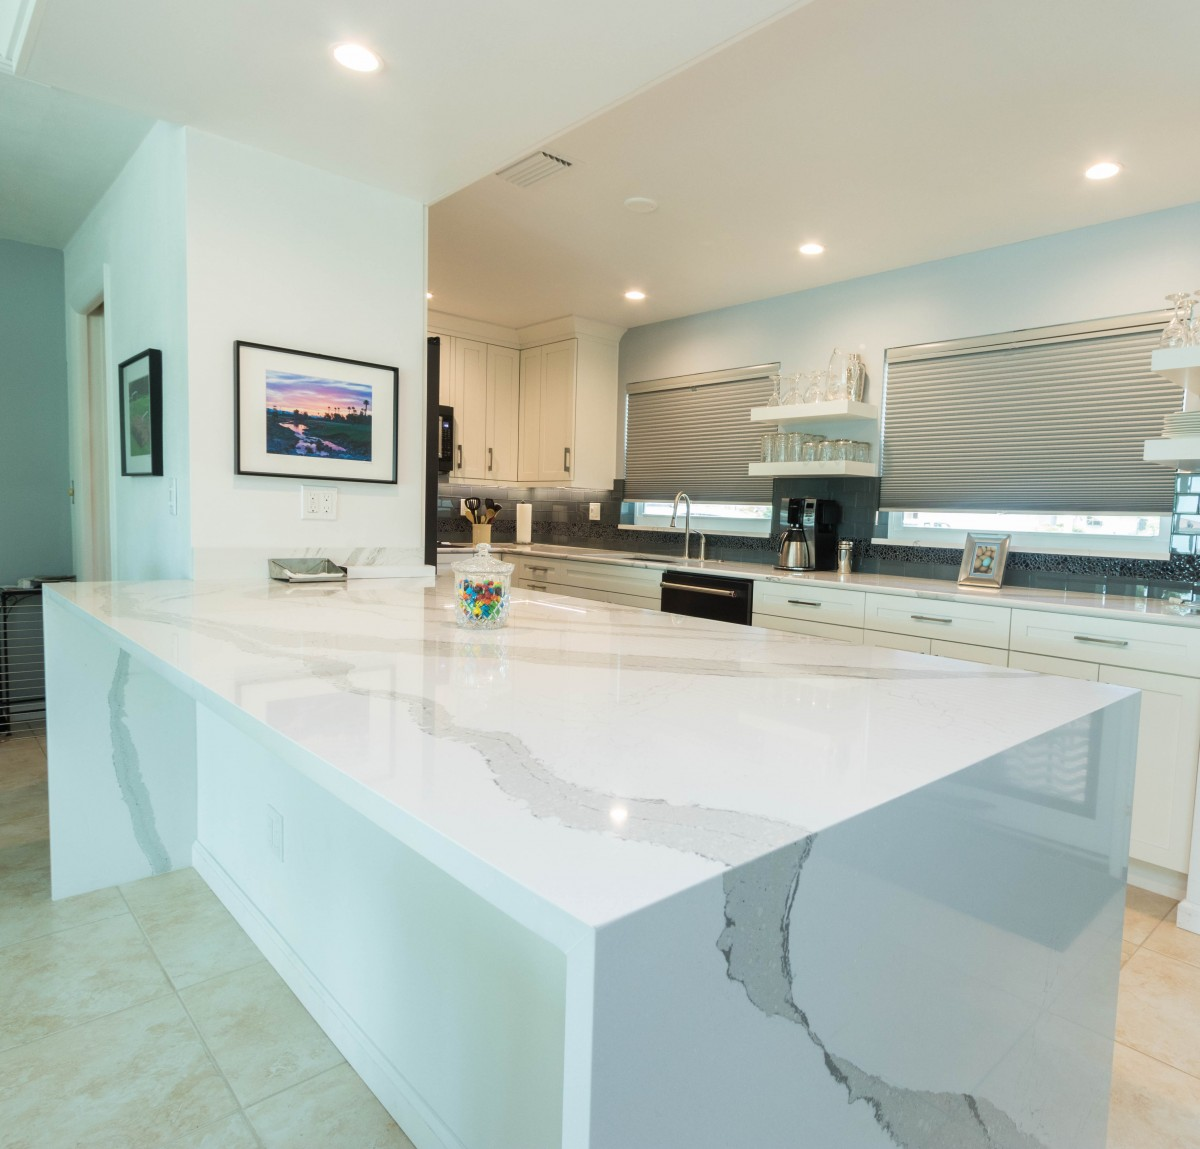 Winter White Kitchen Cabinet Genies Kitchen And Bathroom Remodeling Cape Coral Fl